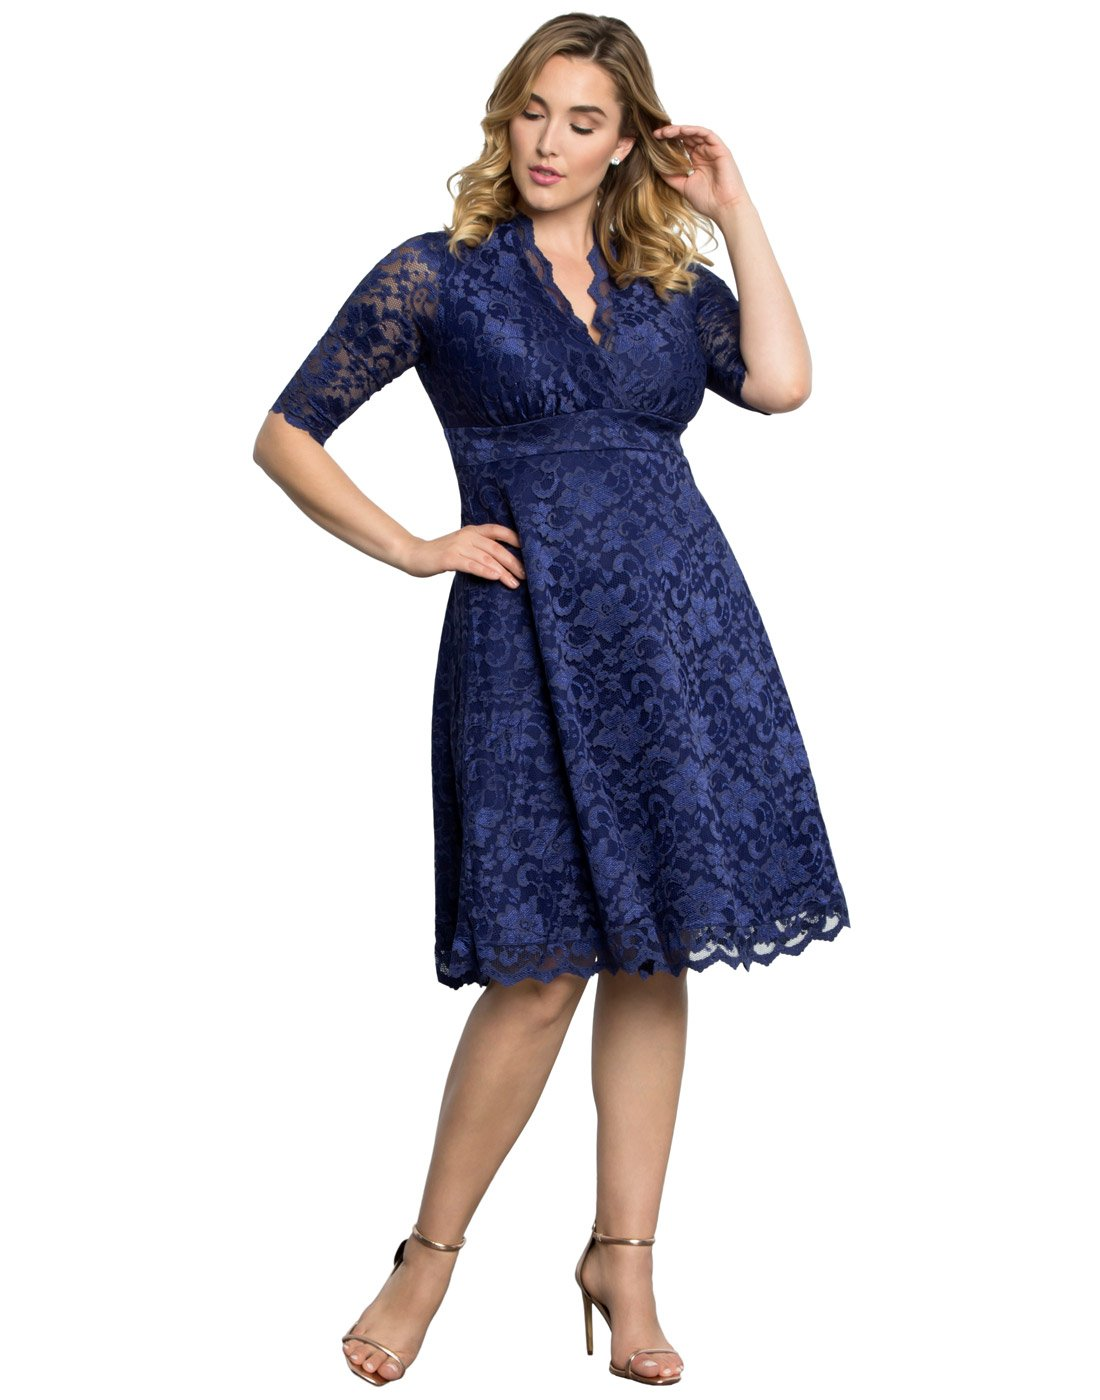 Kiyonna Women's Plus Size Mademoiselle Lace Dress 0X Sapphire Blue by Kiyonna Clothing